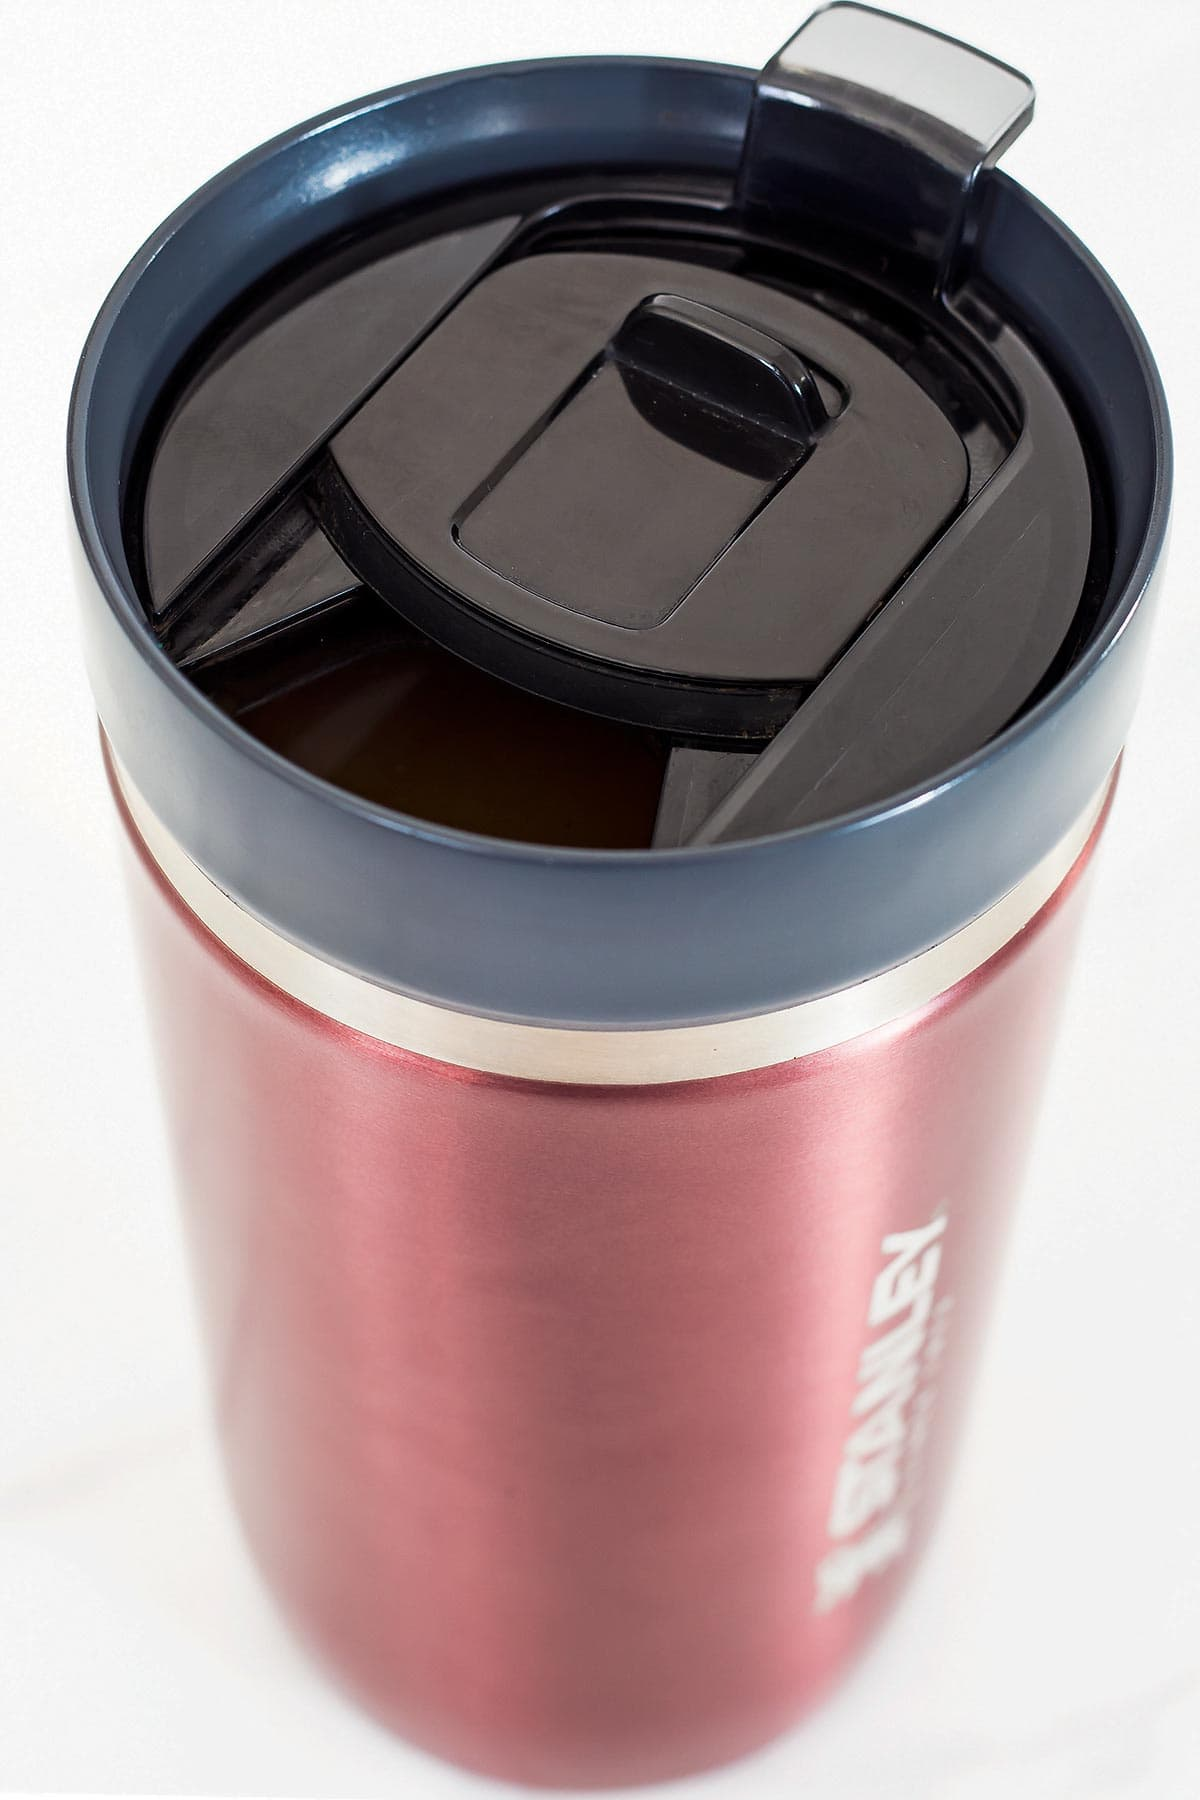 Stanley Coffee Thermos with splash guard